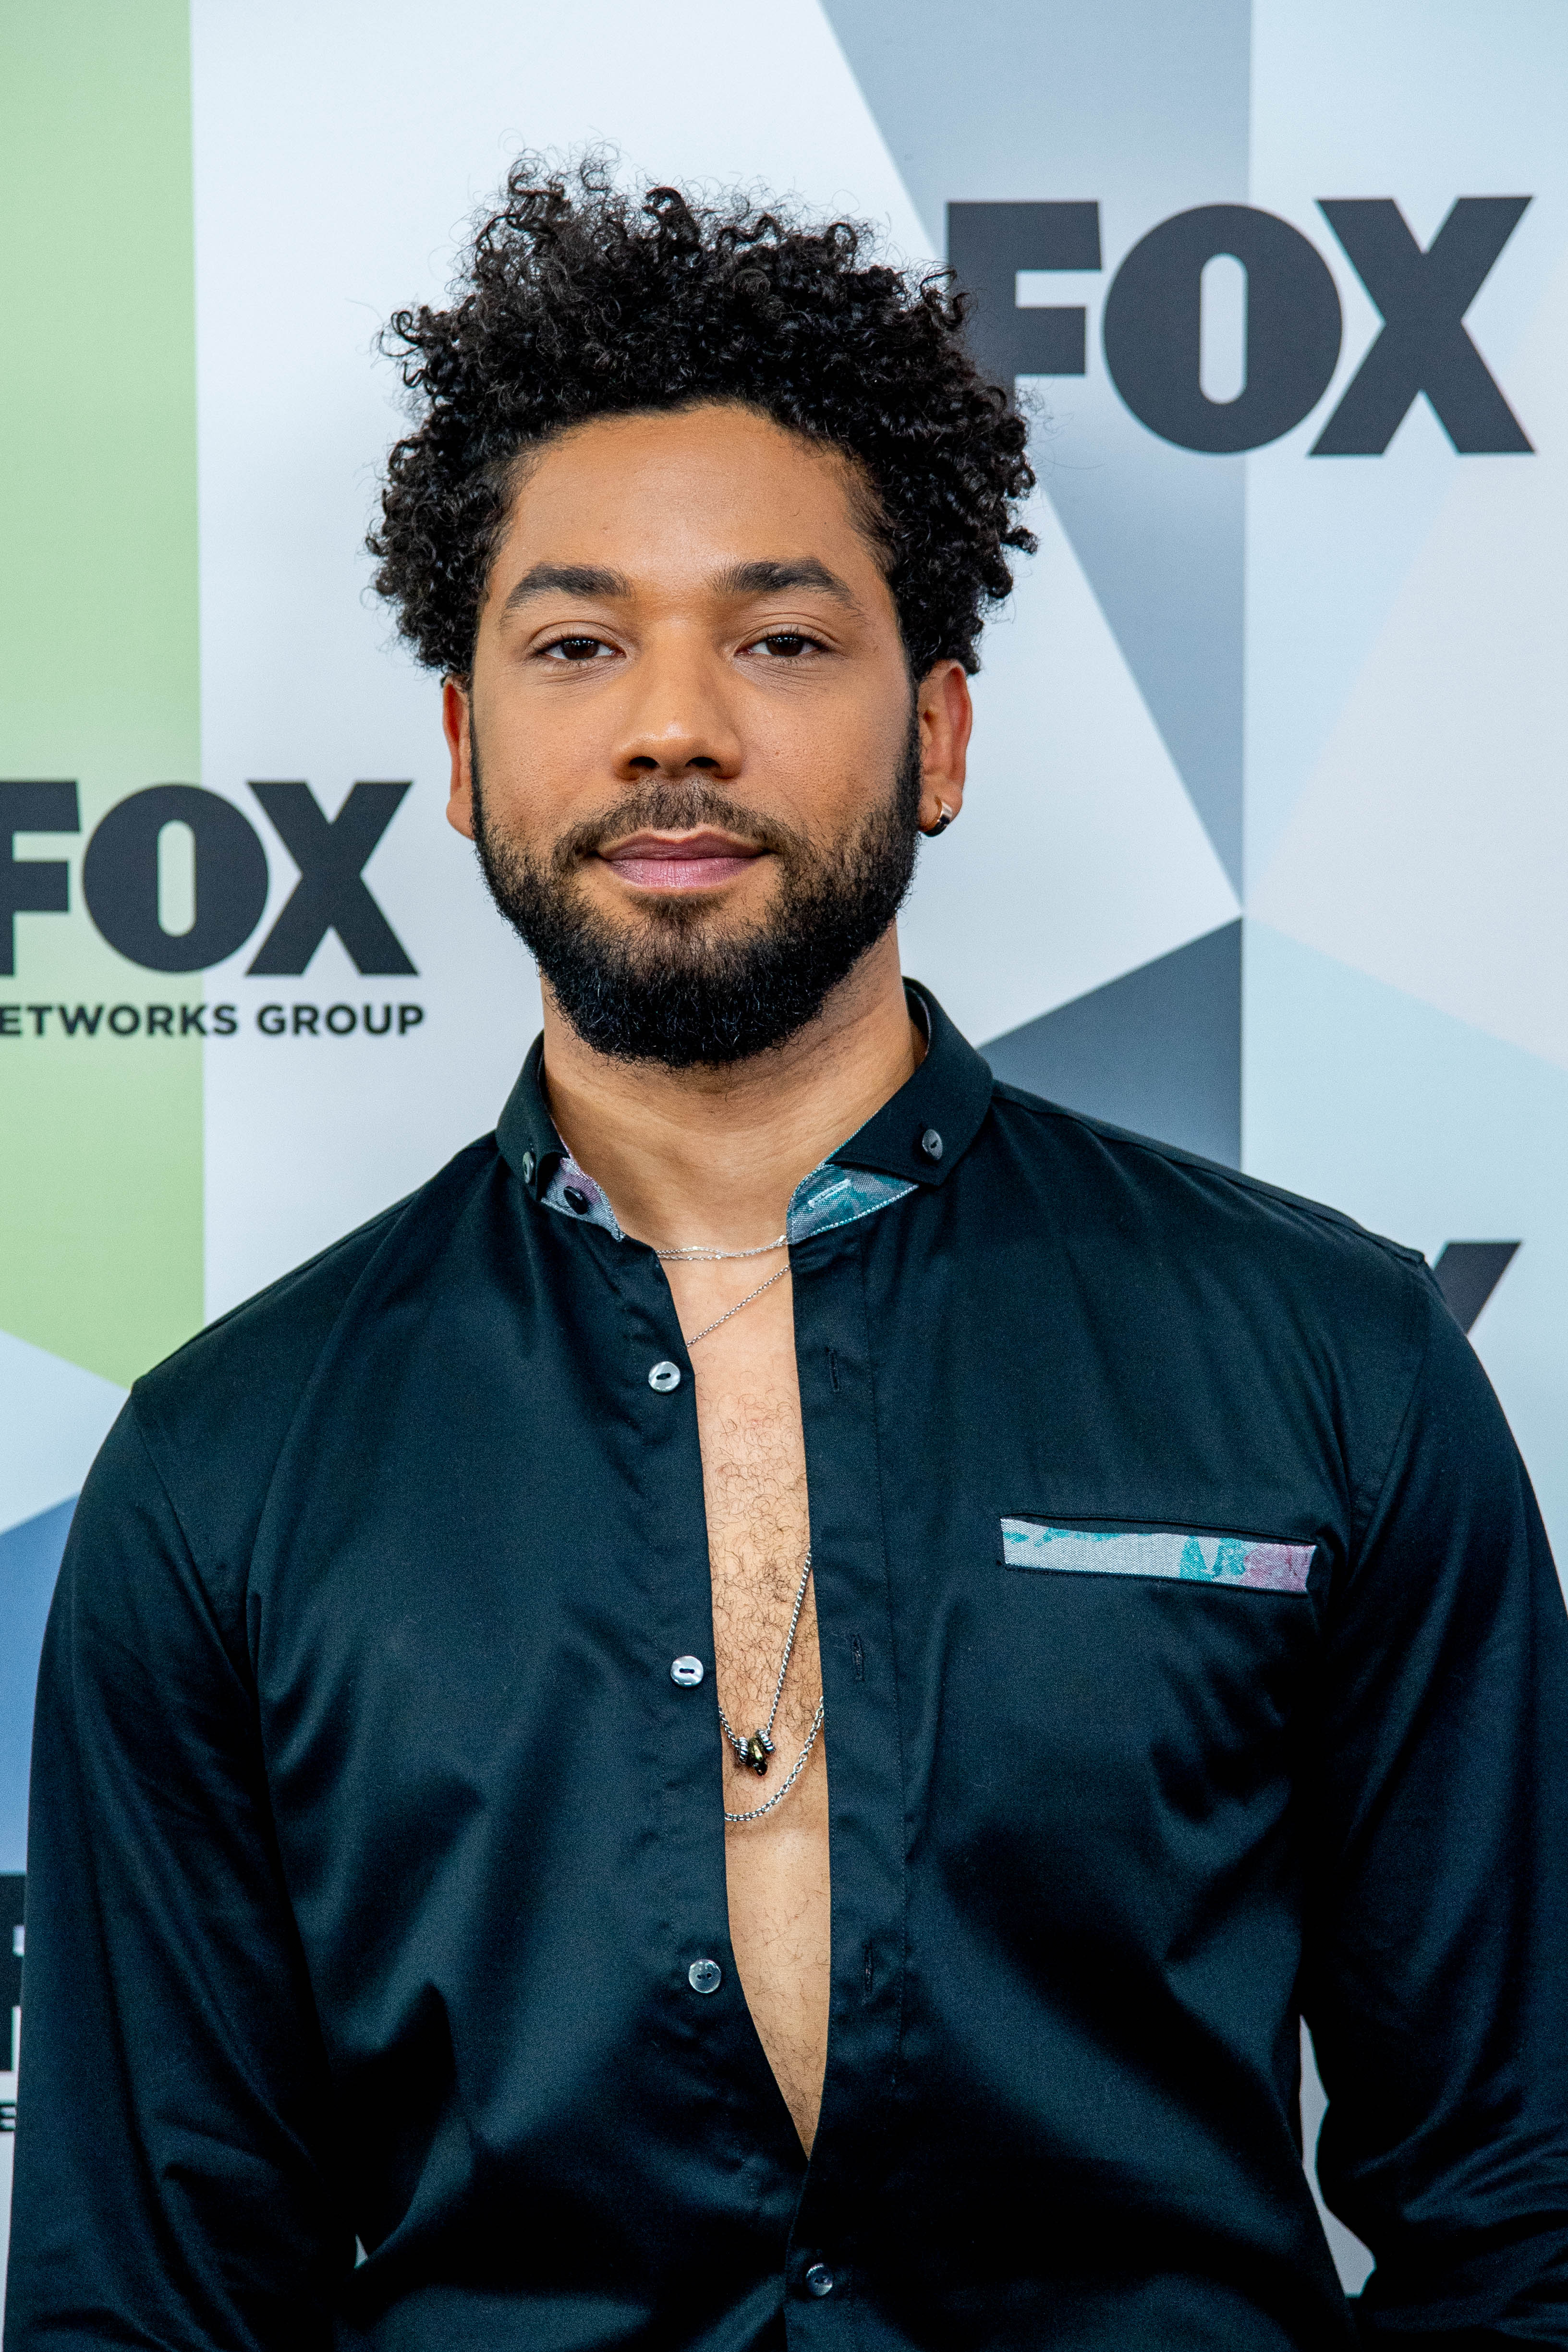 Jussie Smollett attends Fox Upfronts in New York in May 2018 | Photo: Getty Images